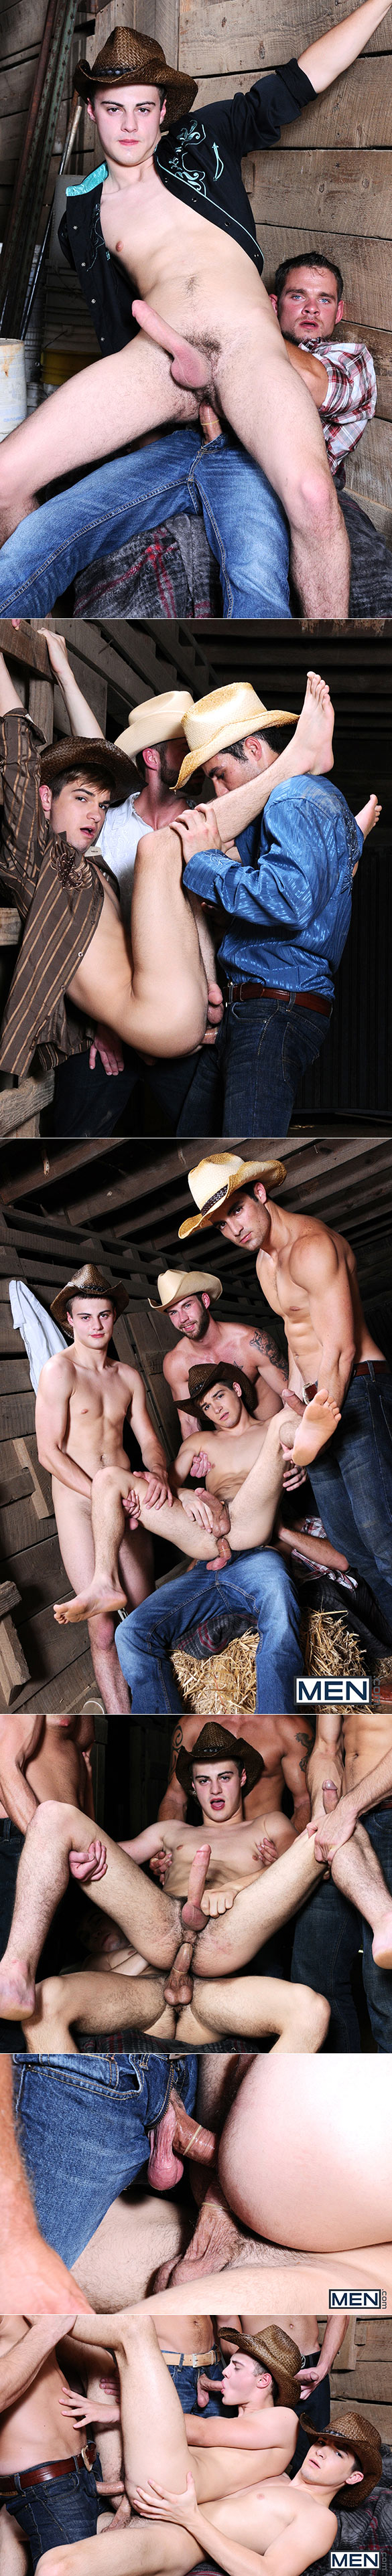 """Men.com: Johnny Rapid and Hunter Page get fucked by Jack King, Cooper Reed and Chris Bines in """"Going West, Part 3"""""""